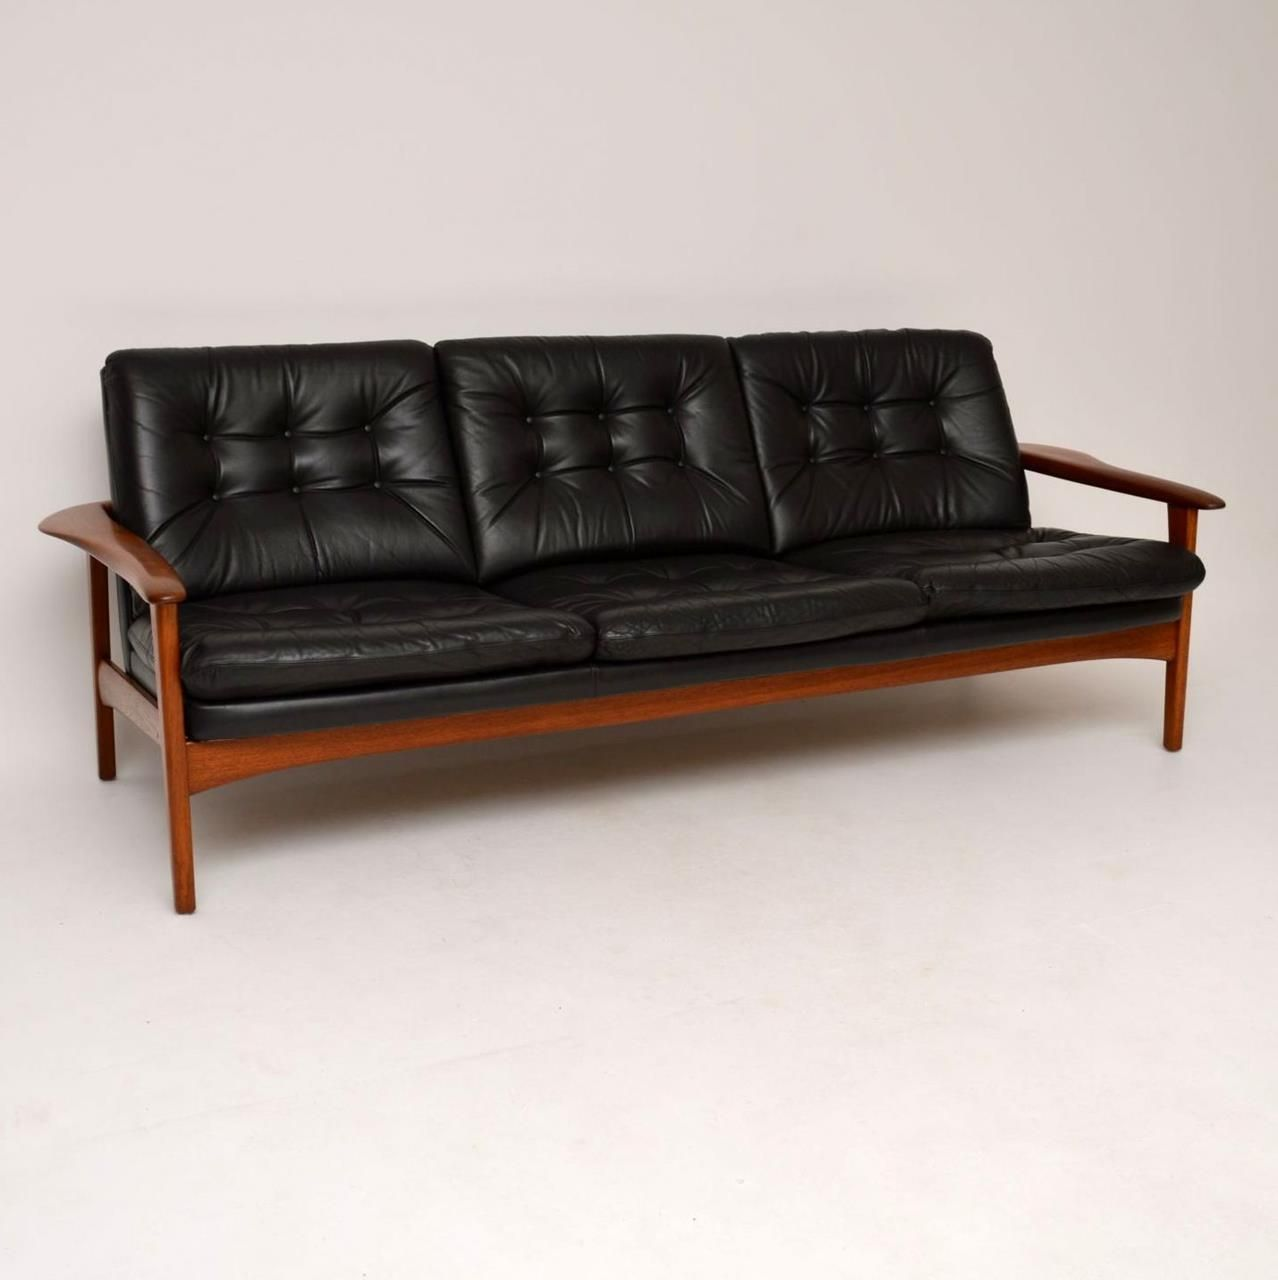 Danish Teak Retro Leather Sofa Vintage 1960 S